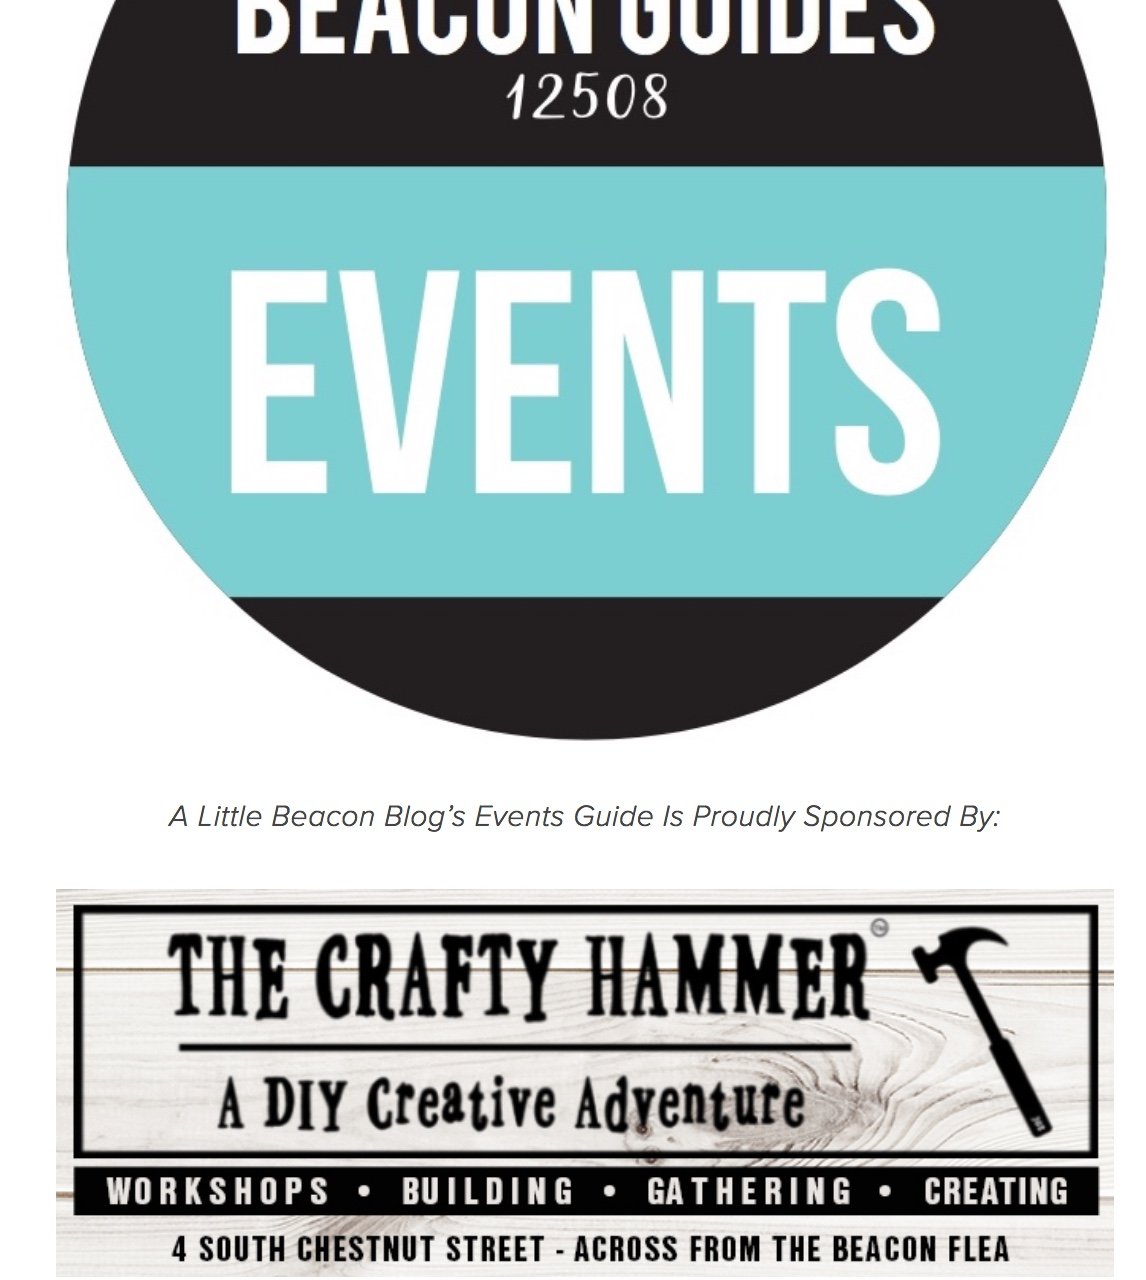 event guide sponsorship crafty hammer.jpeg